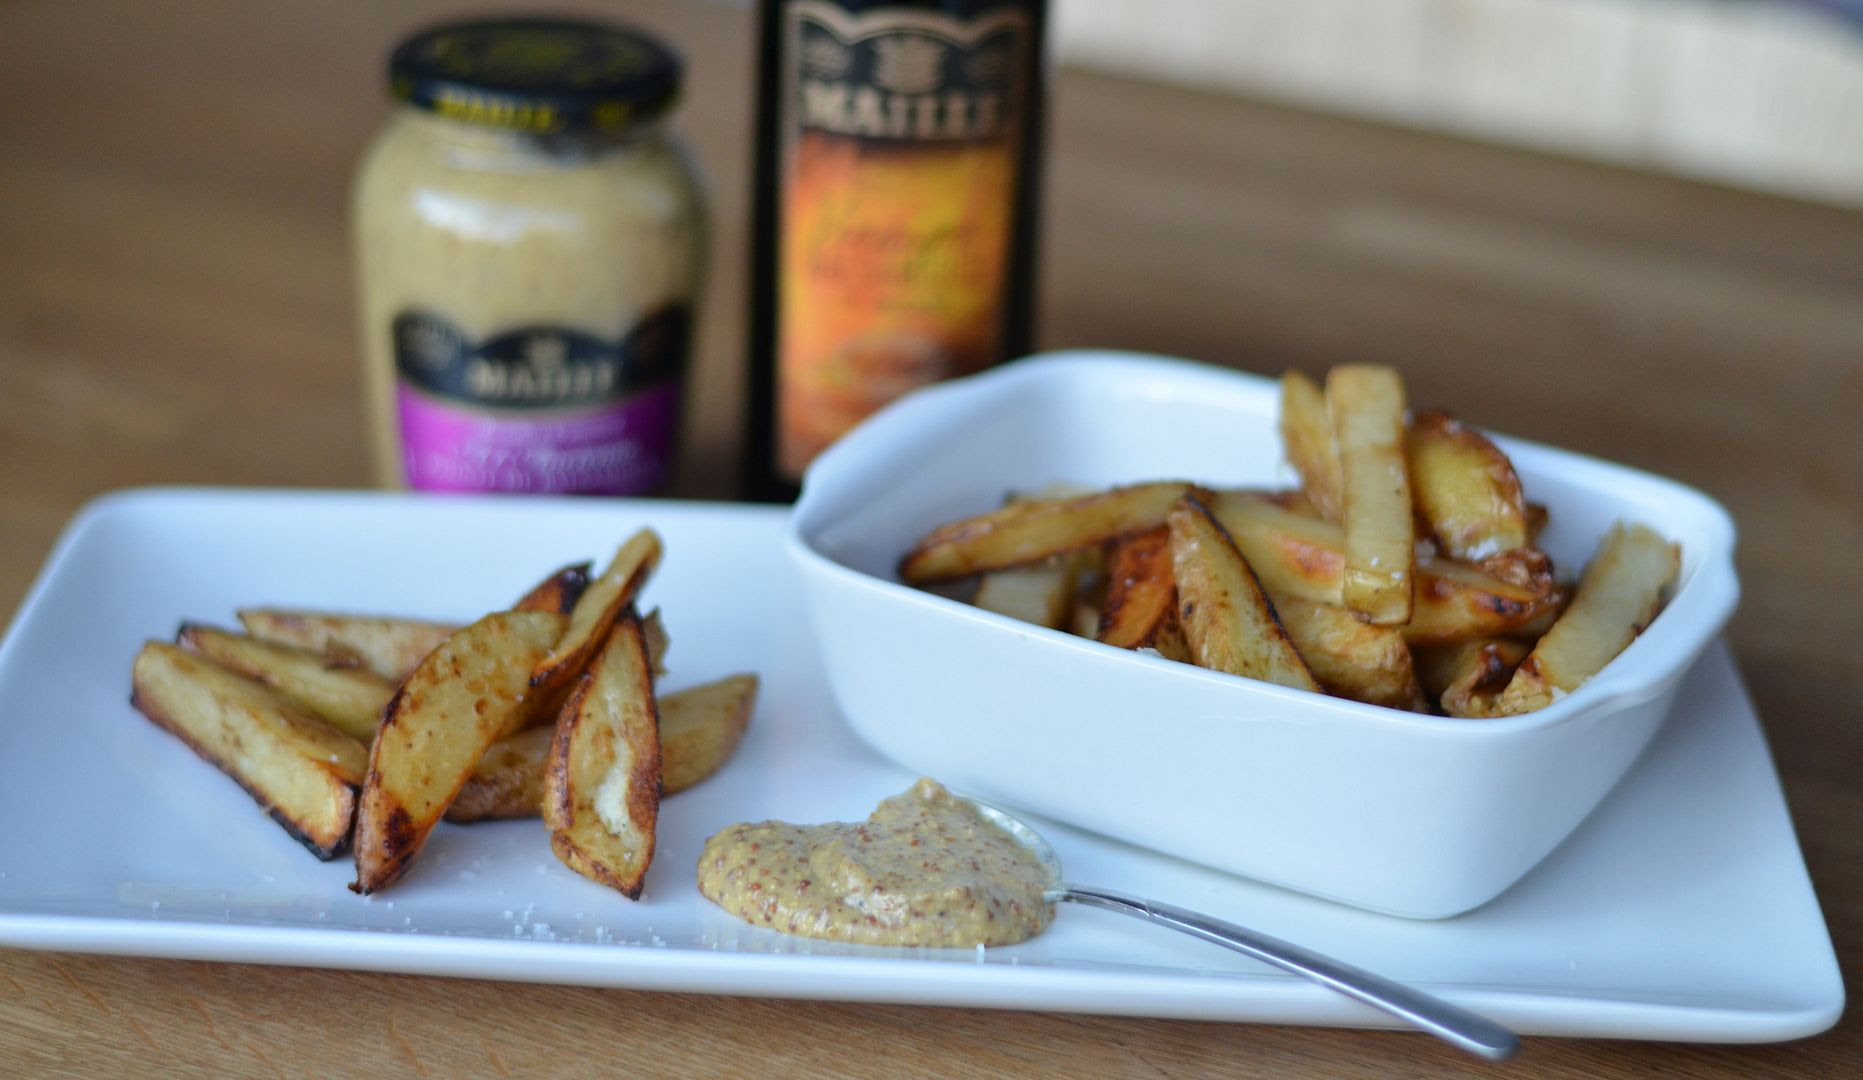 Oven Baked Sea Salt & Balsamic Vinegar Chips